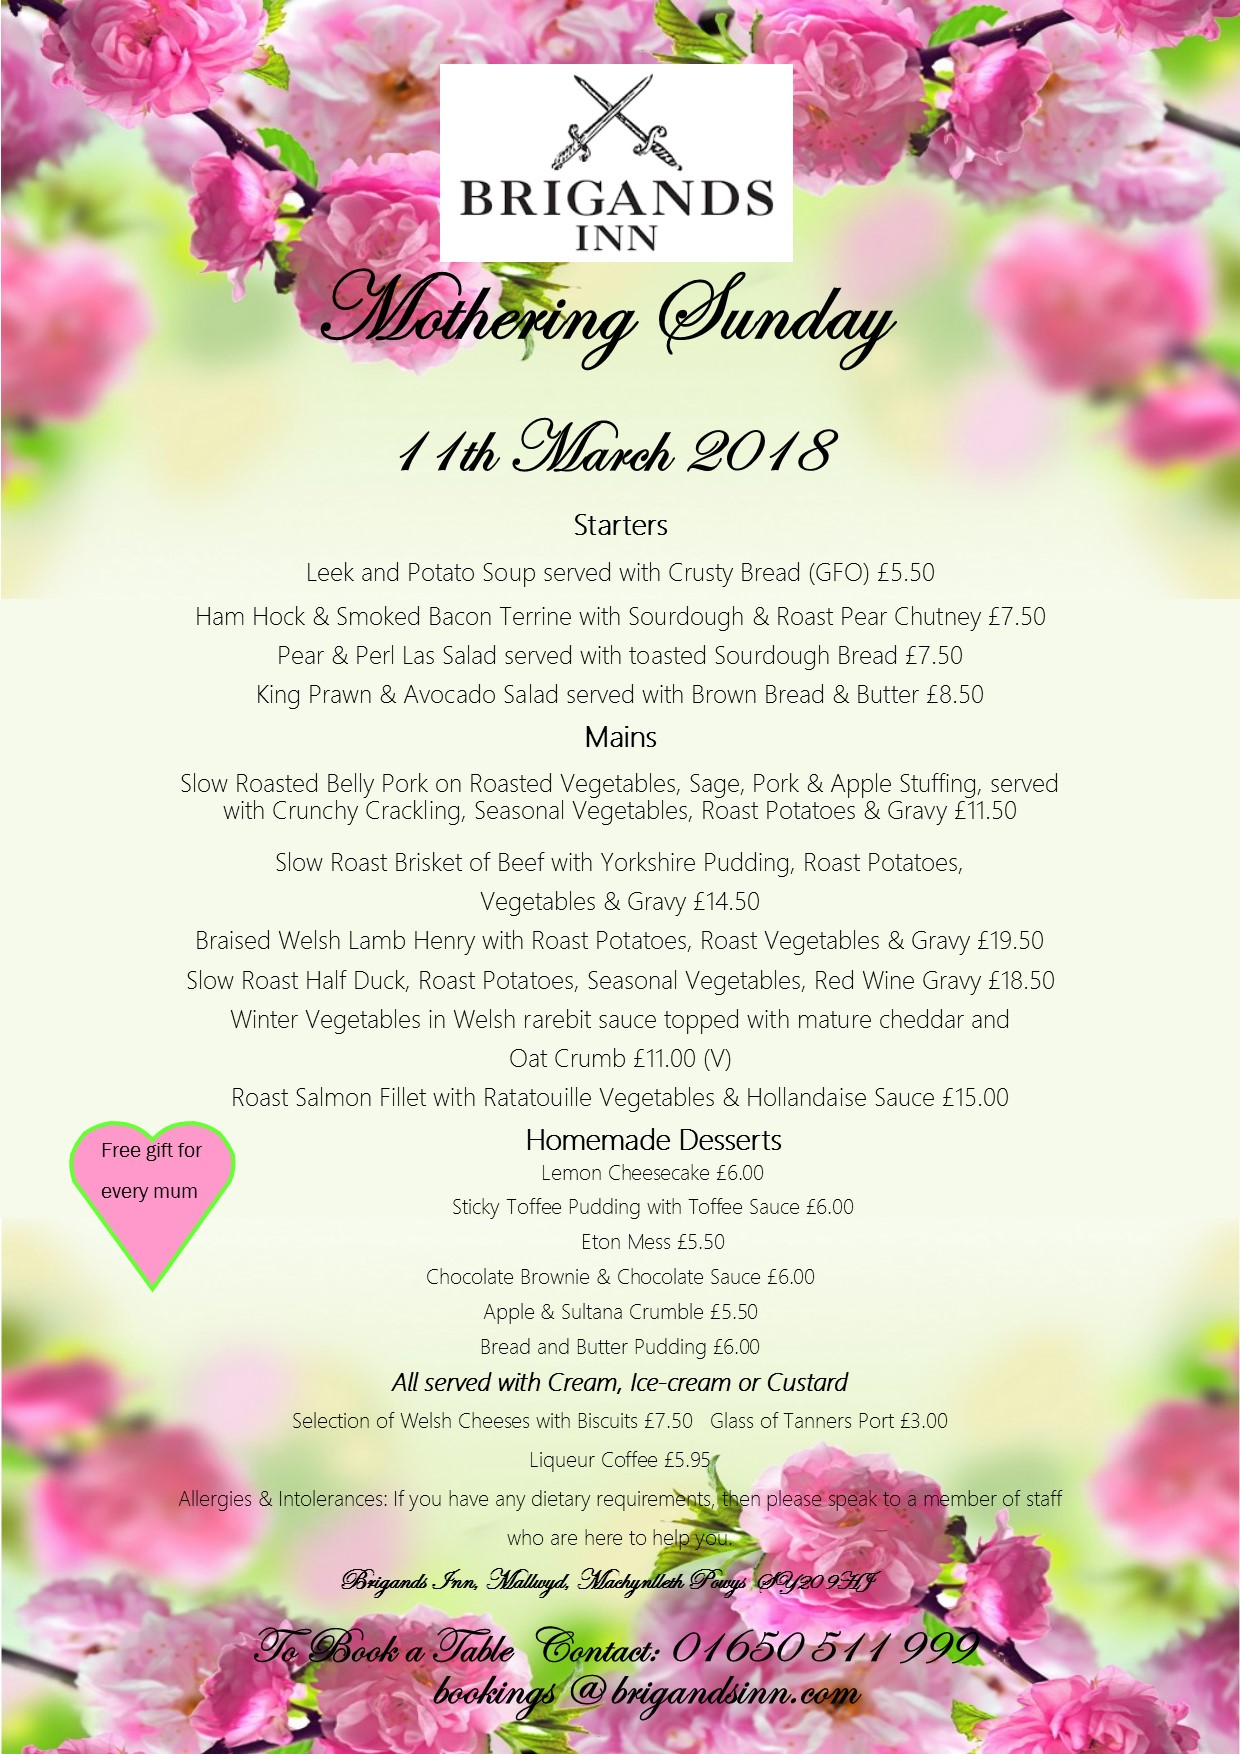 sunday 11th march